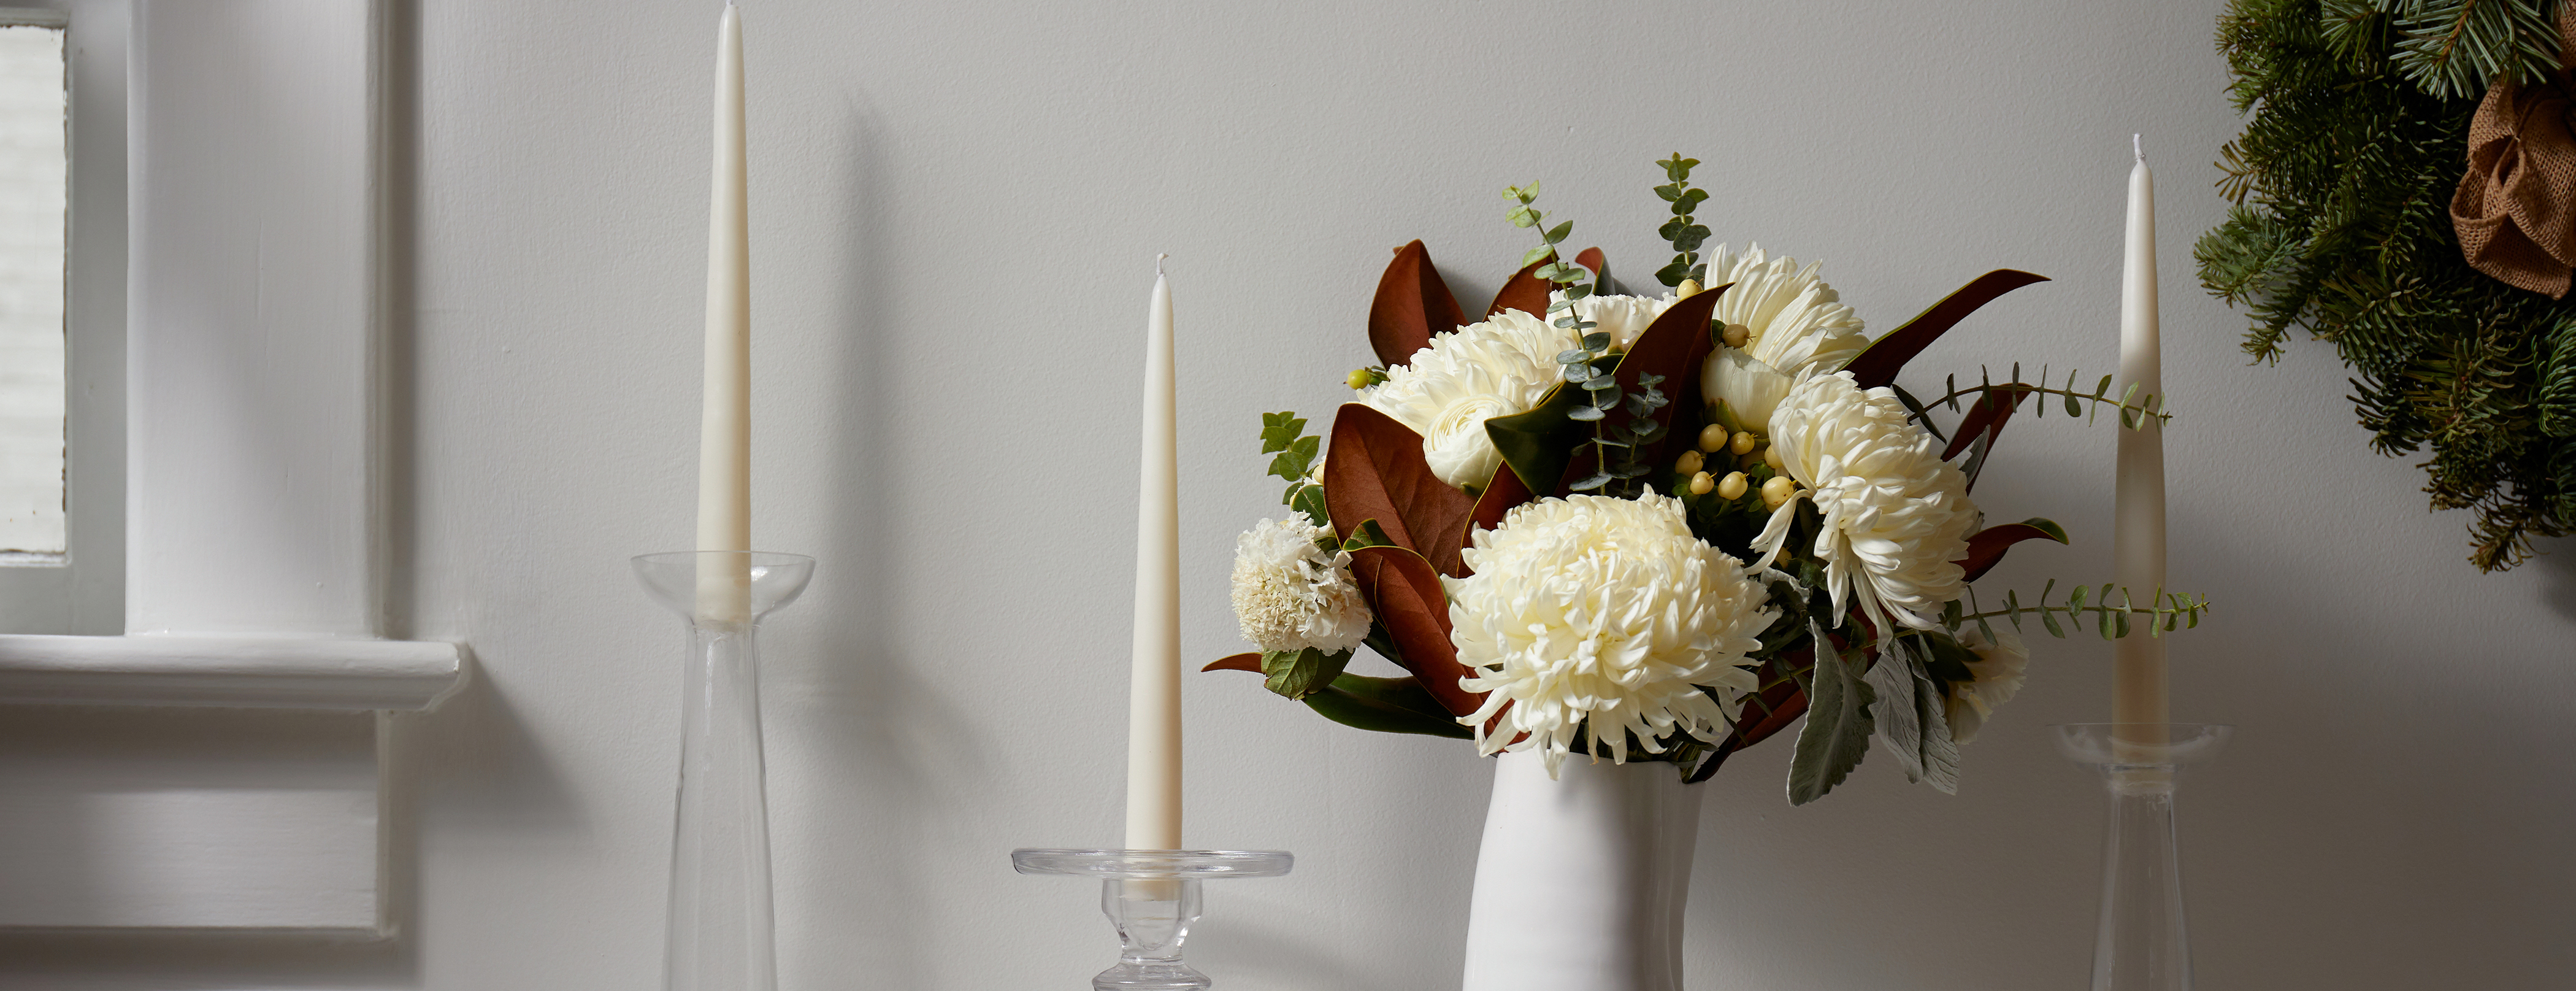 Arrangement with magnolia leaves and tapered candles